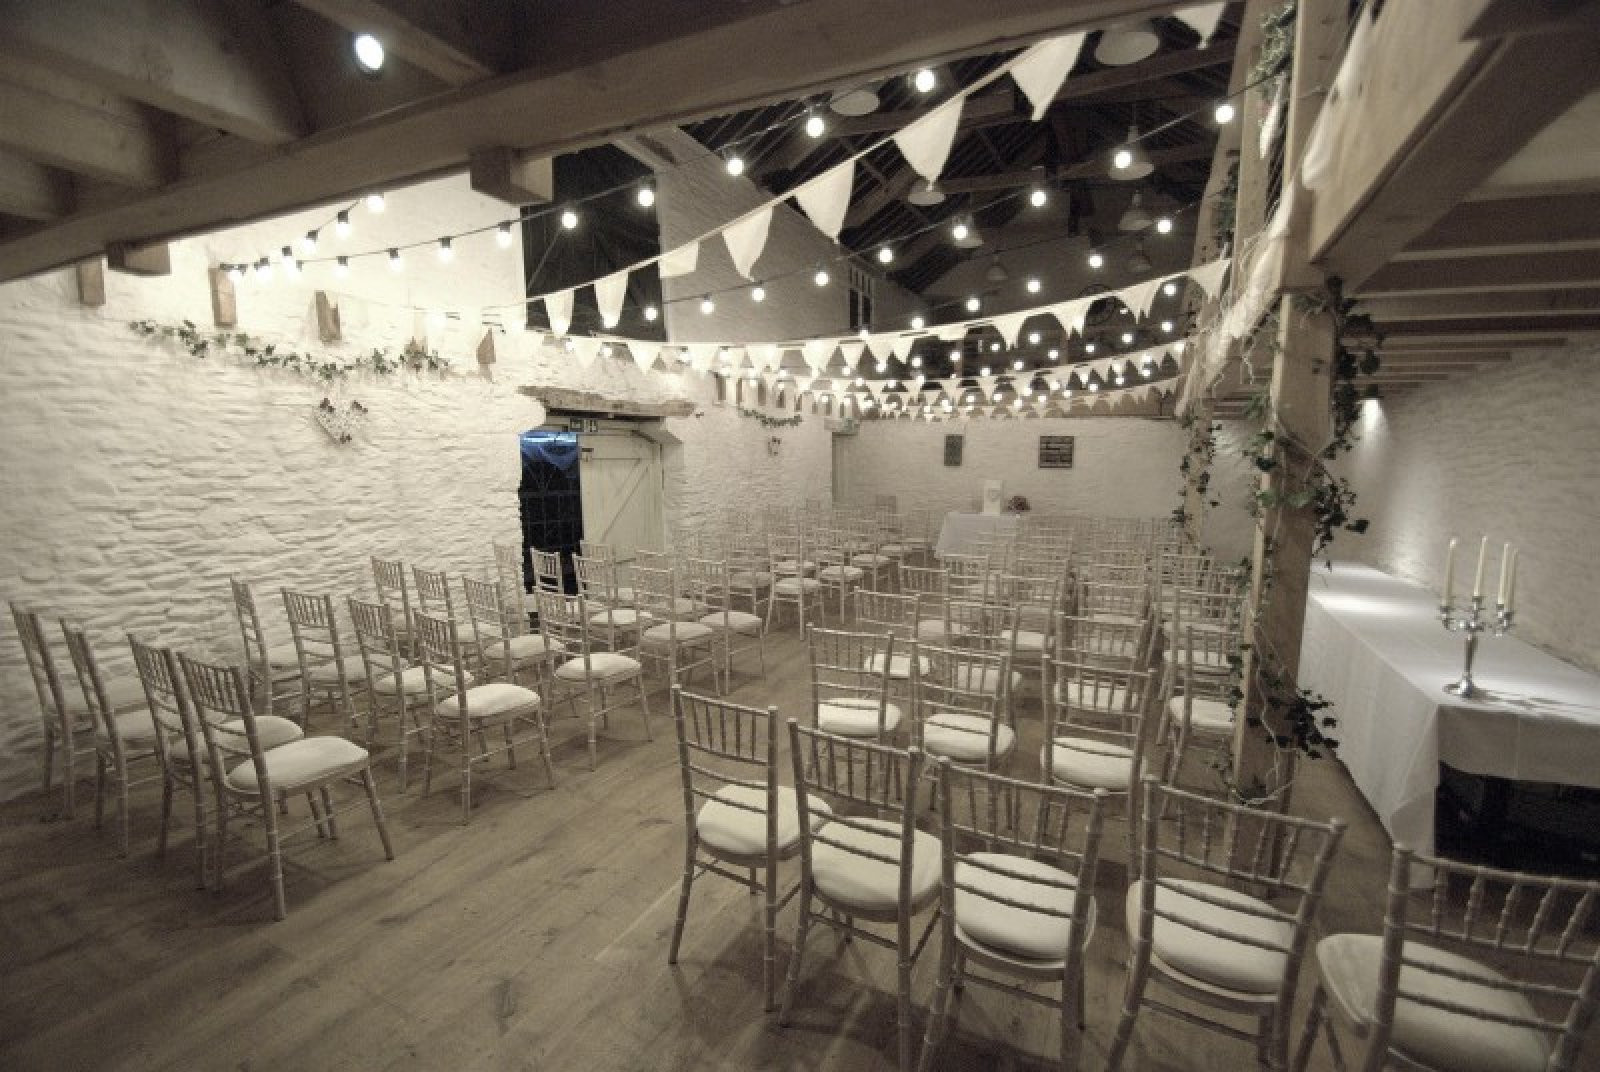 Trenderway Farm | Barn Wedding Venues | WeddingPlanner.co.uk